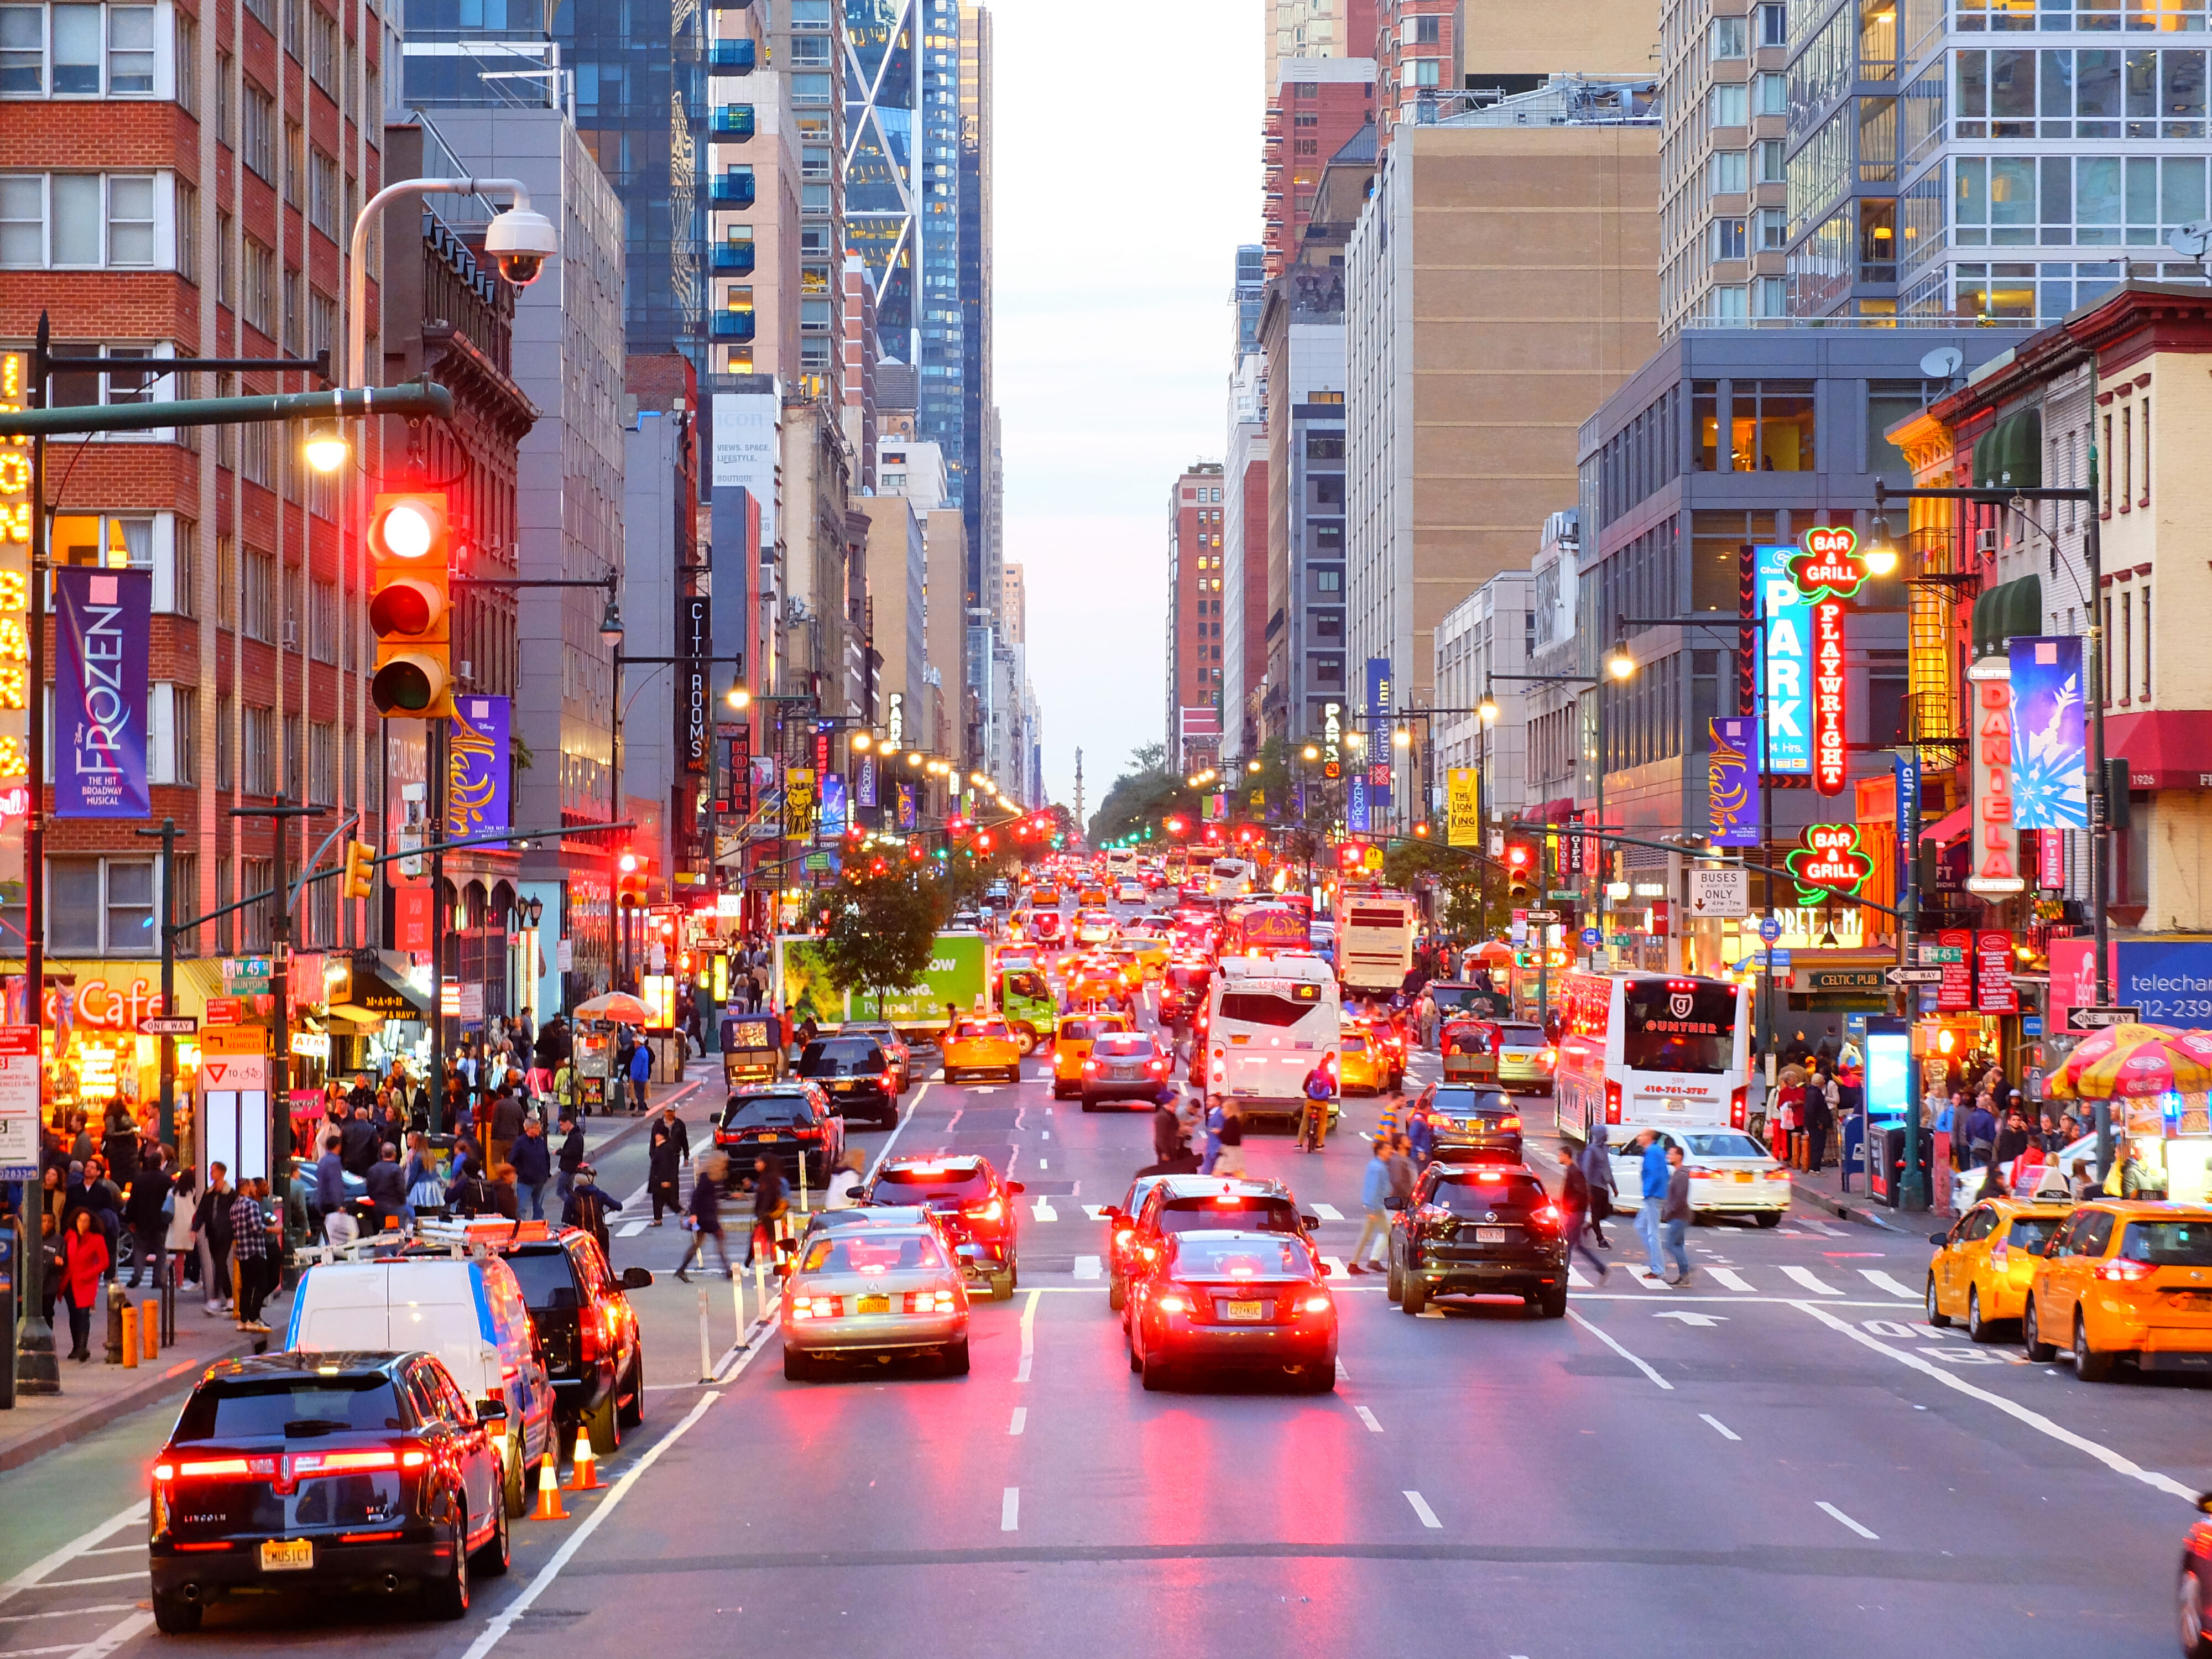 8th Avenue in New York High Quality Wallpaper